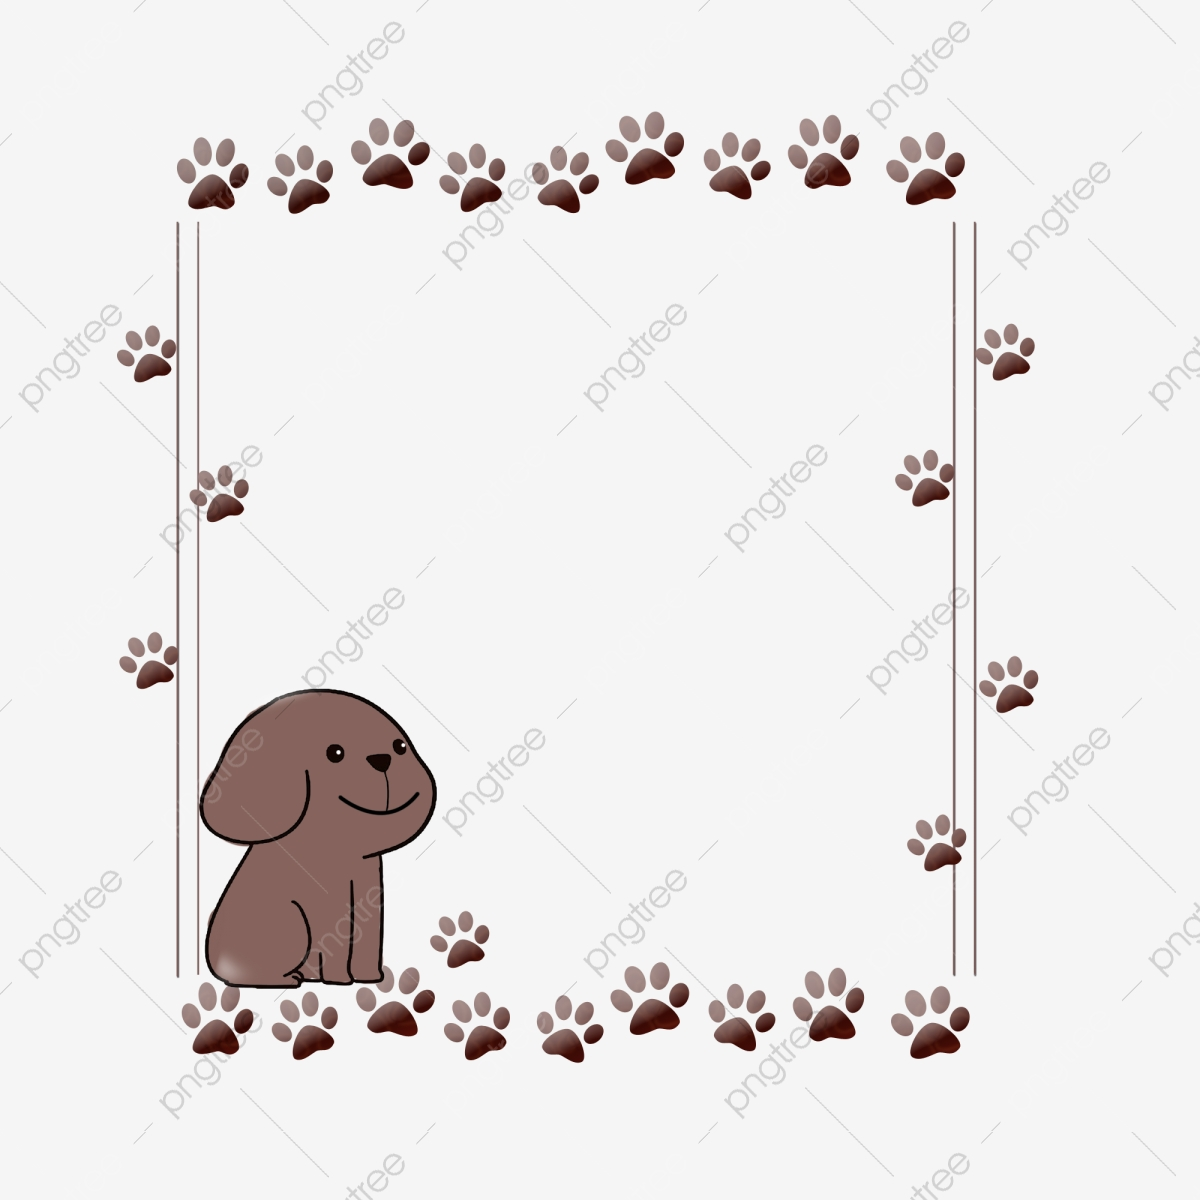 Cute Dog Paw Print Border Dog Paw Clipart Cute Png Transparent Clipart Image And Psd File For Free Download 173 transparent png illustrations and cipart matching paw print. https pngtree com freepng cute dog paw print border 4537998 html